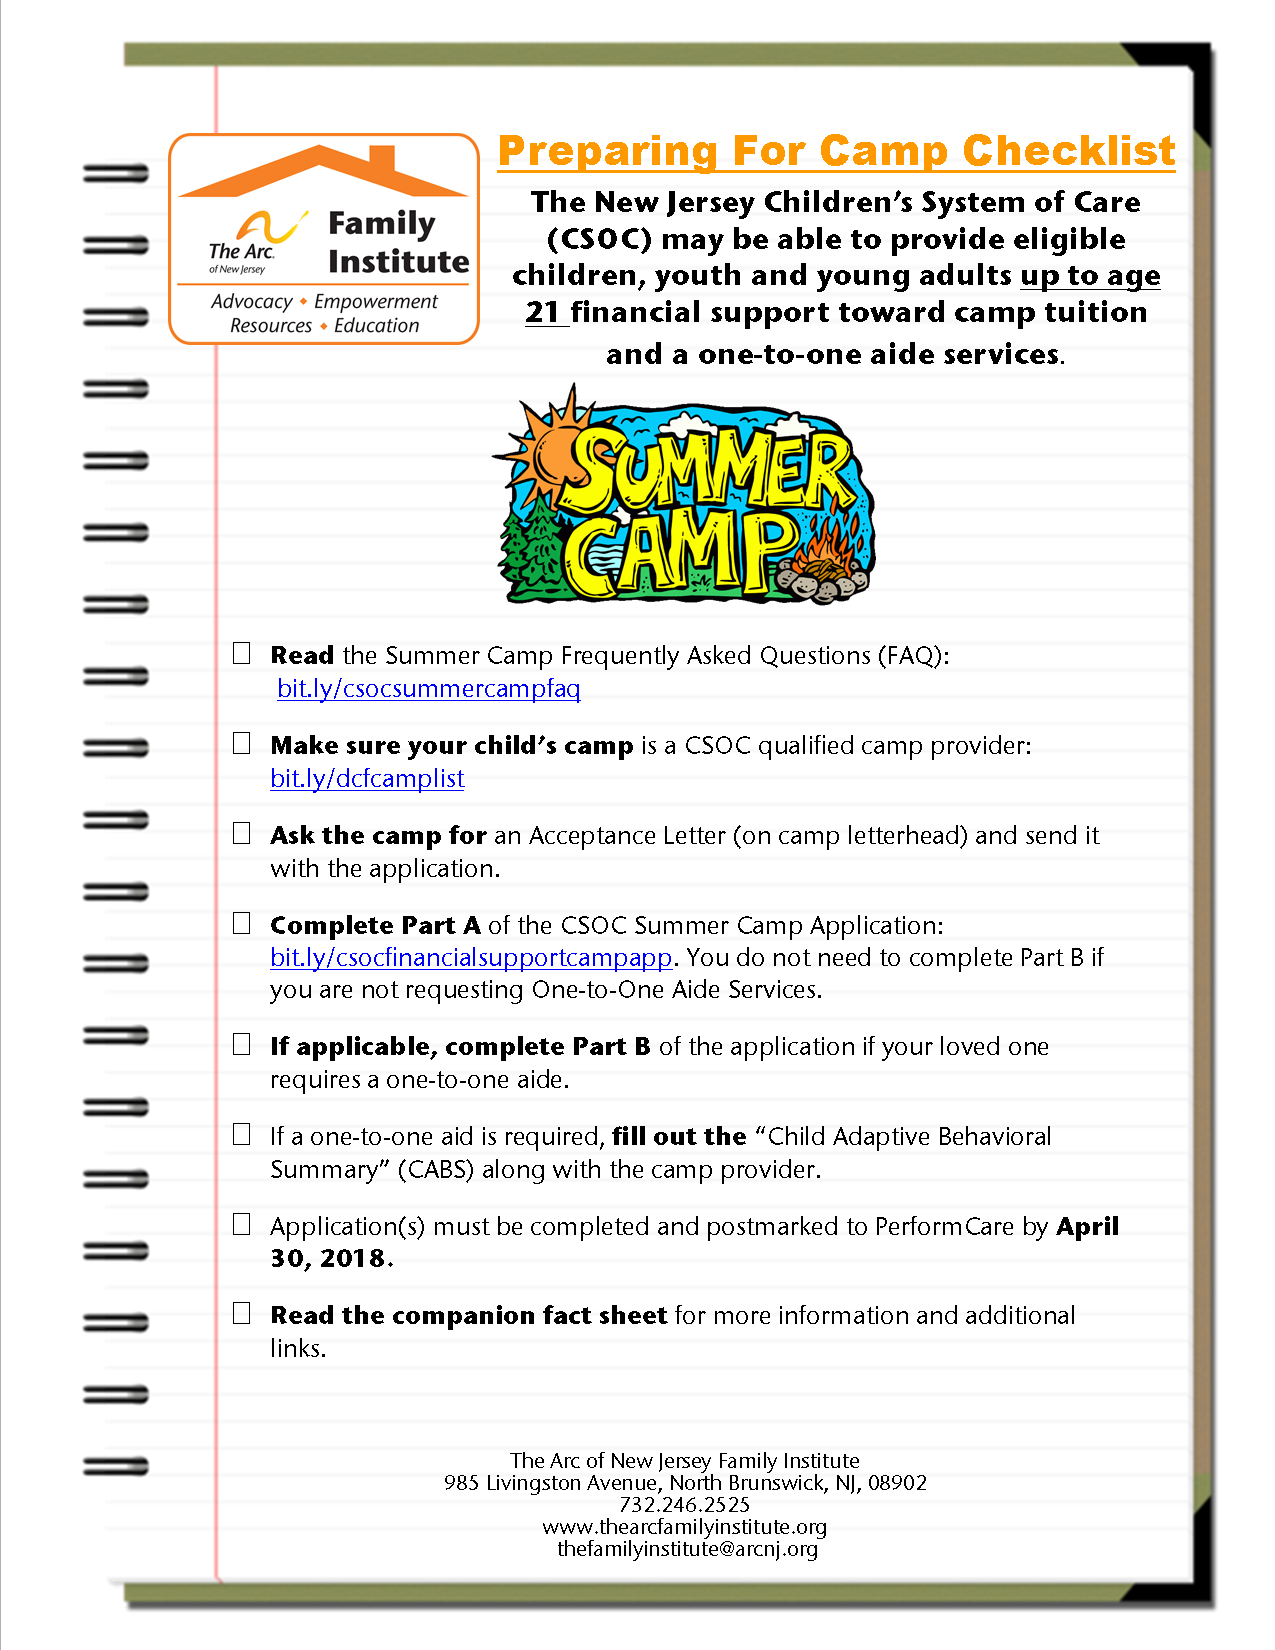 Summer Camp Application: A Checklist